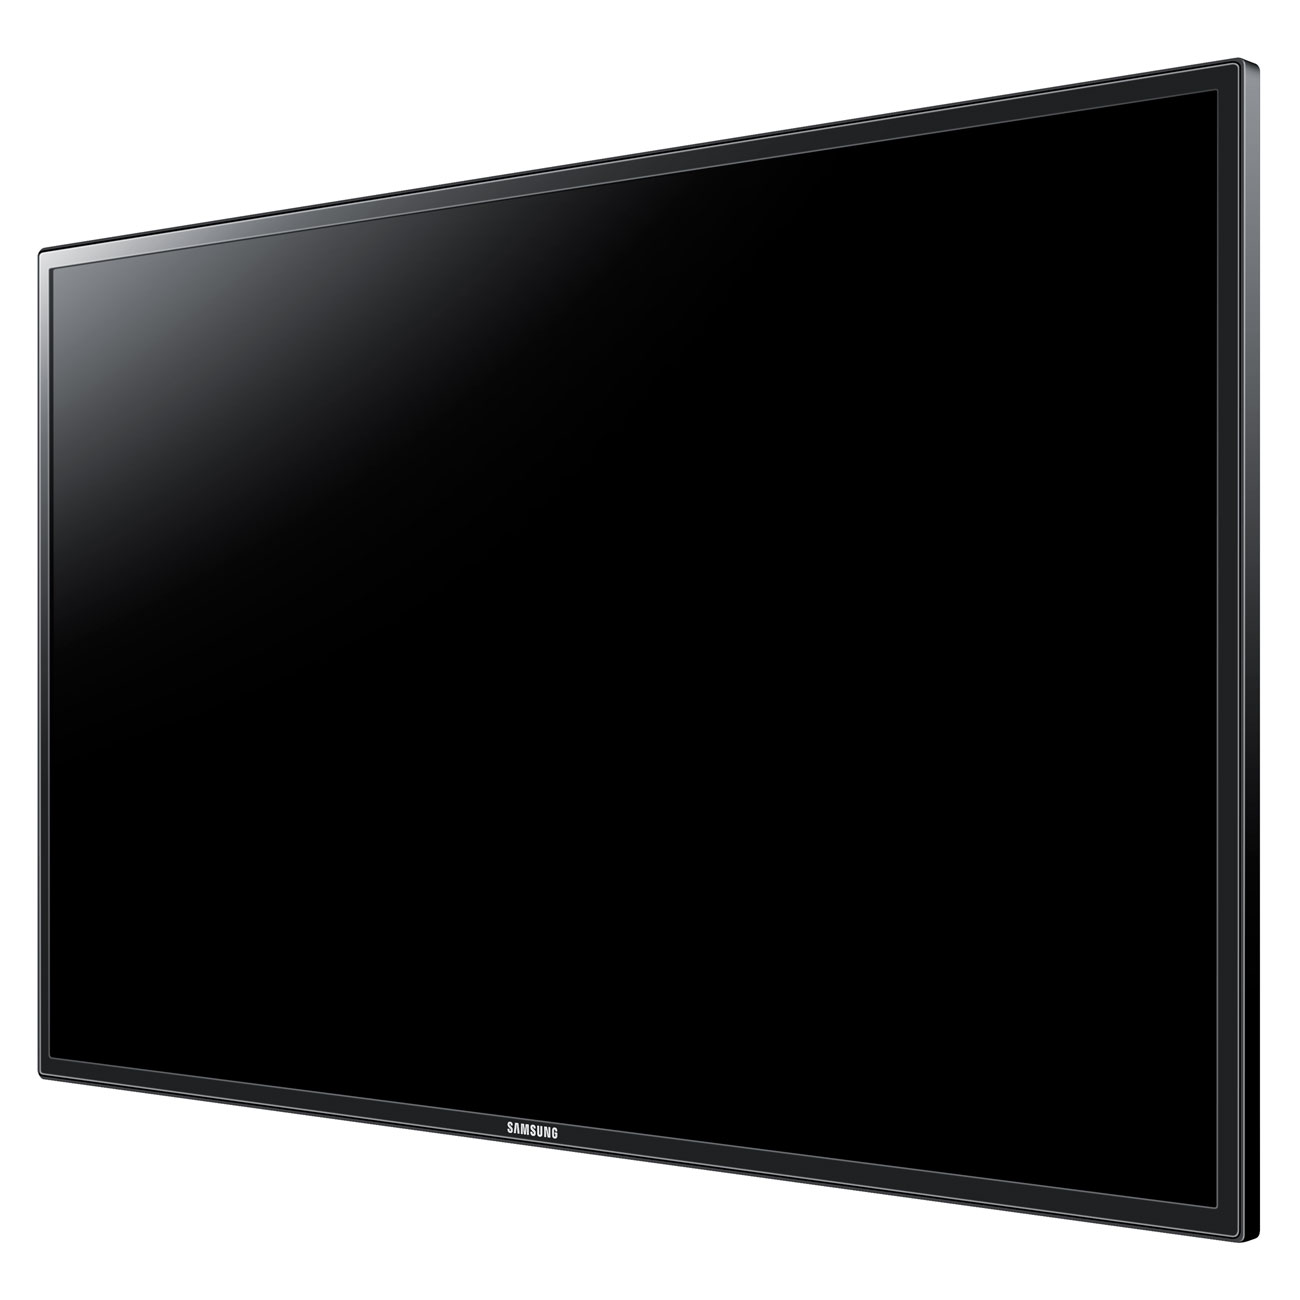 Samsung 55 led me55a ecran dynamique samsung sur for Samsung photo ecran